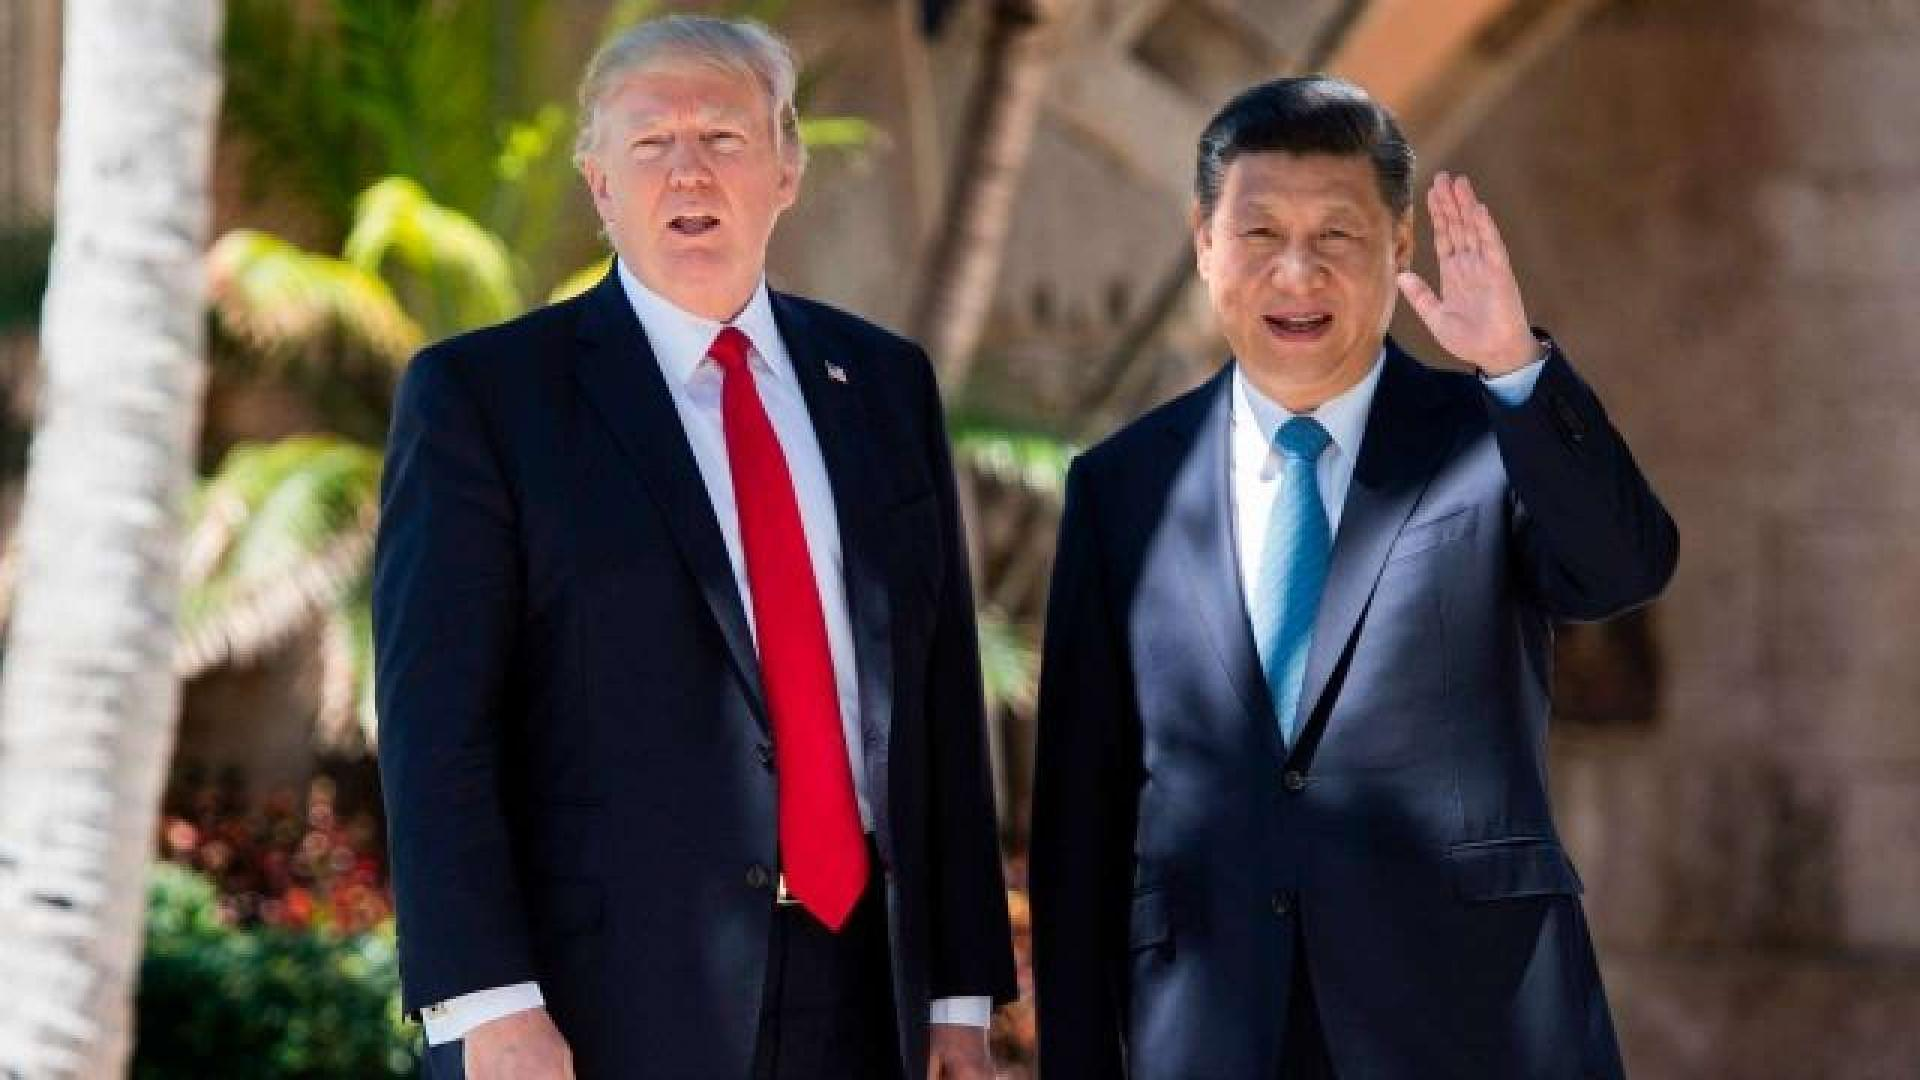 Trump says it doesn't matter if Xi attends G20